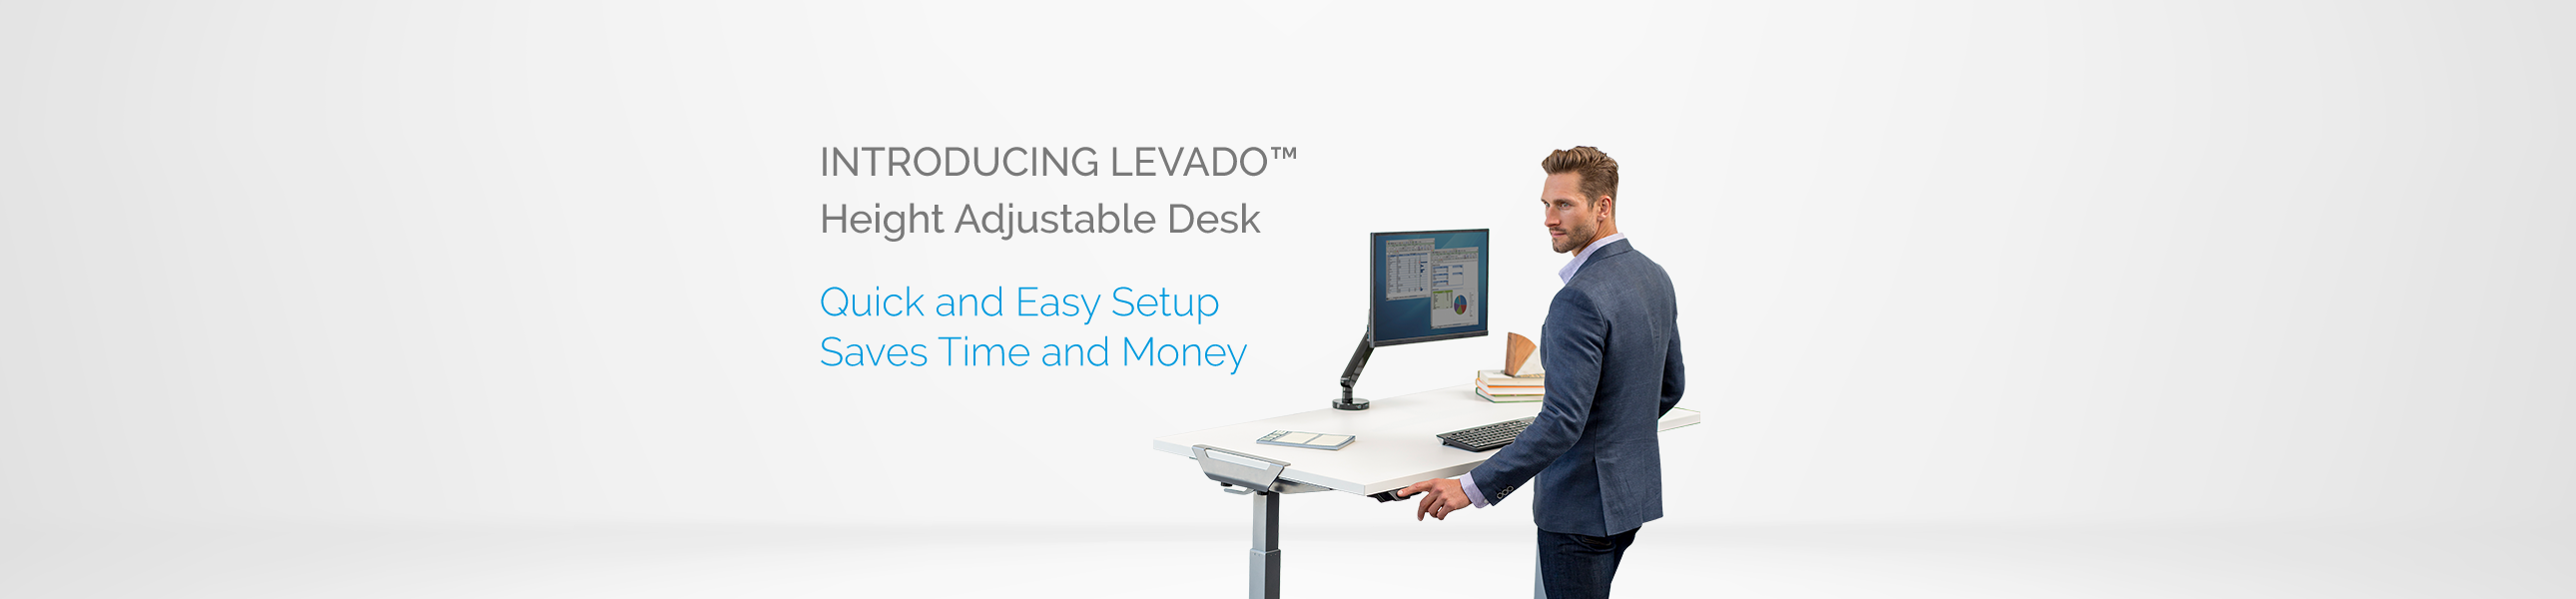 Levado - Height Adjustable Desk - Quick and Easy Setup - Saves Time and Money